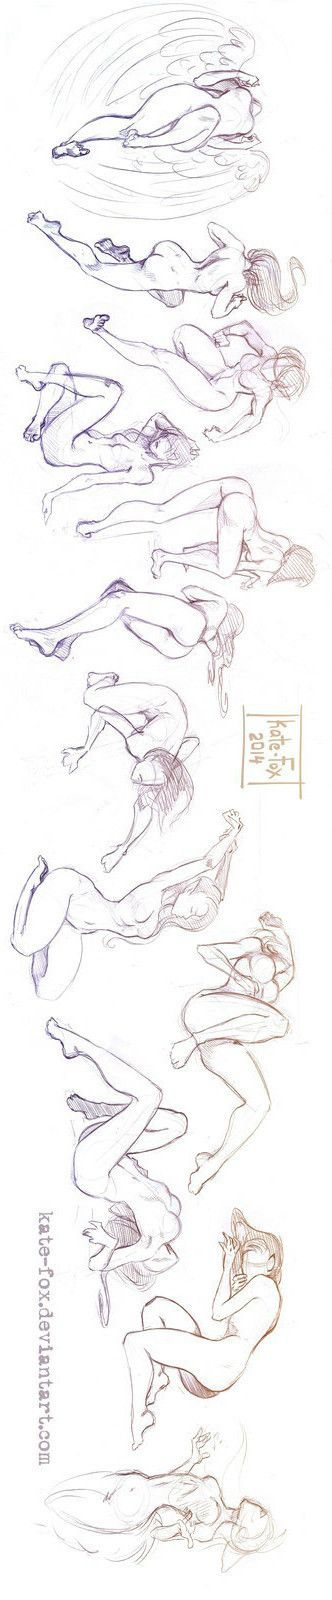 Anatomy. Pose. Female. | Anatomy/Tutorials | Pinterest | Pose, Draw ...